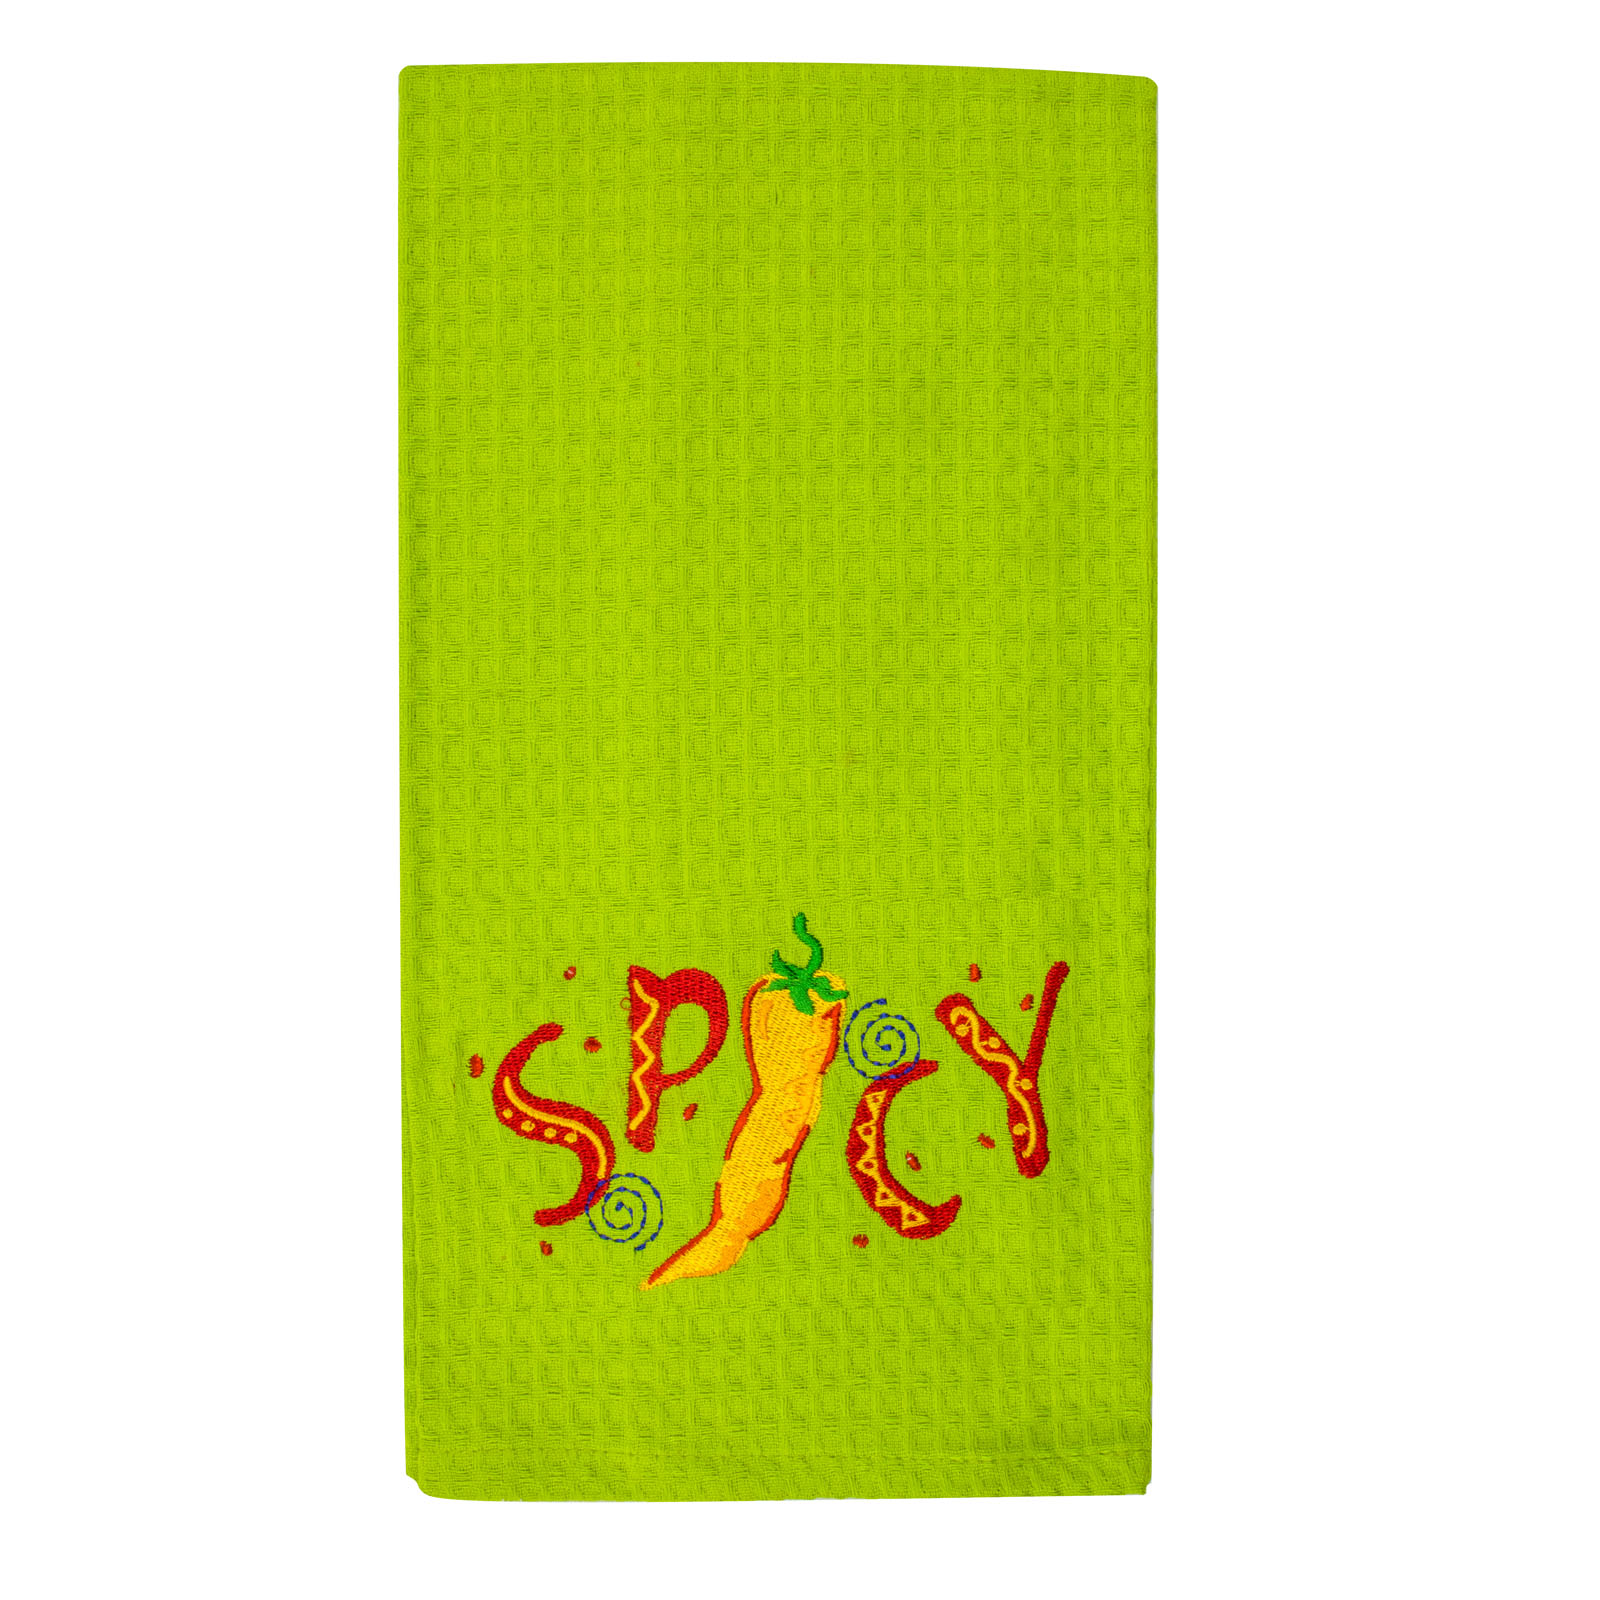 Spicy Waffle Kitchen Towel